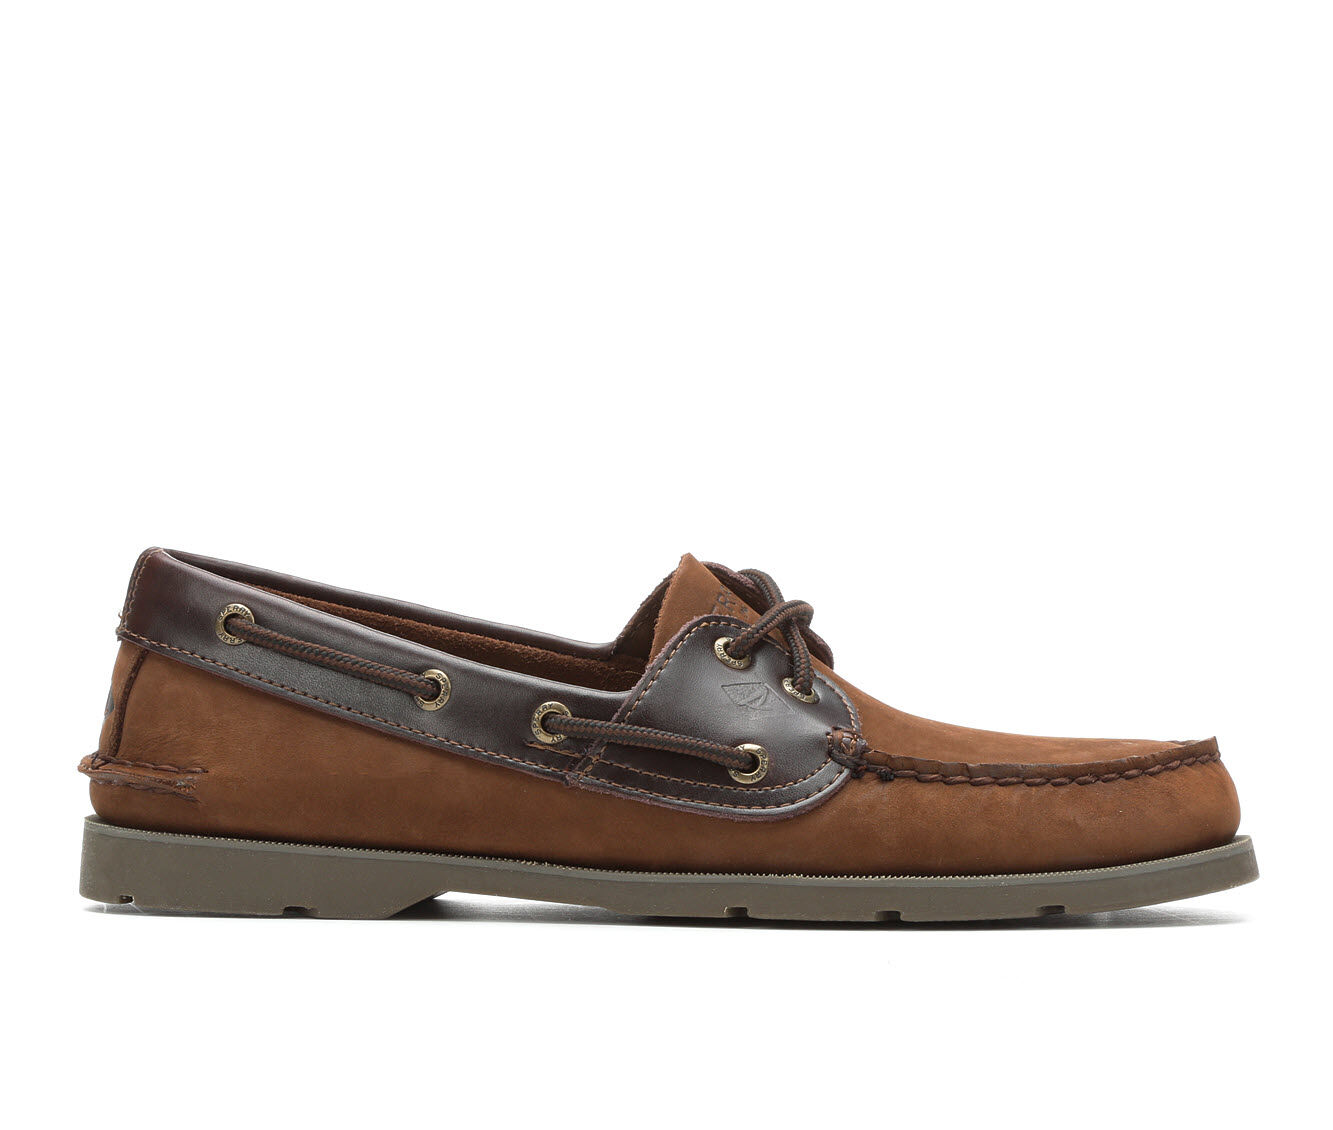 new arrivals Men's Sperry Leeward 2 Eye Boat Shoes Brown Oiled Nub